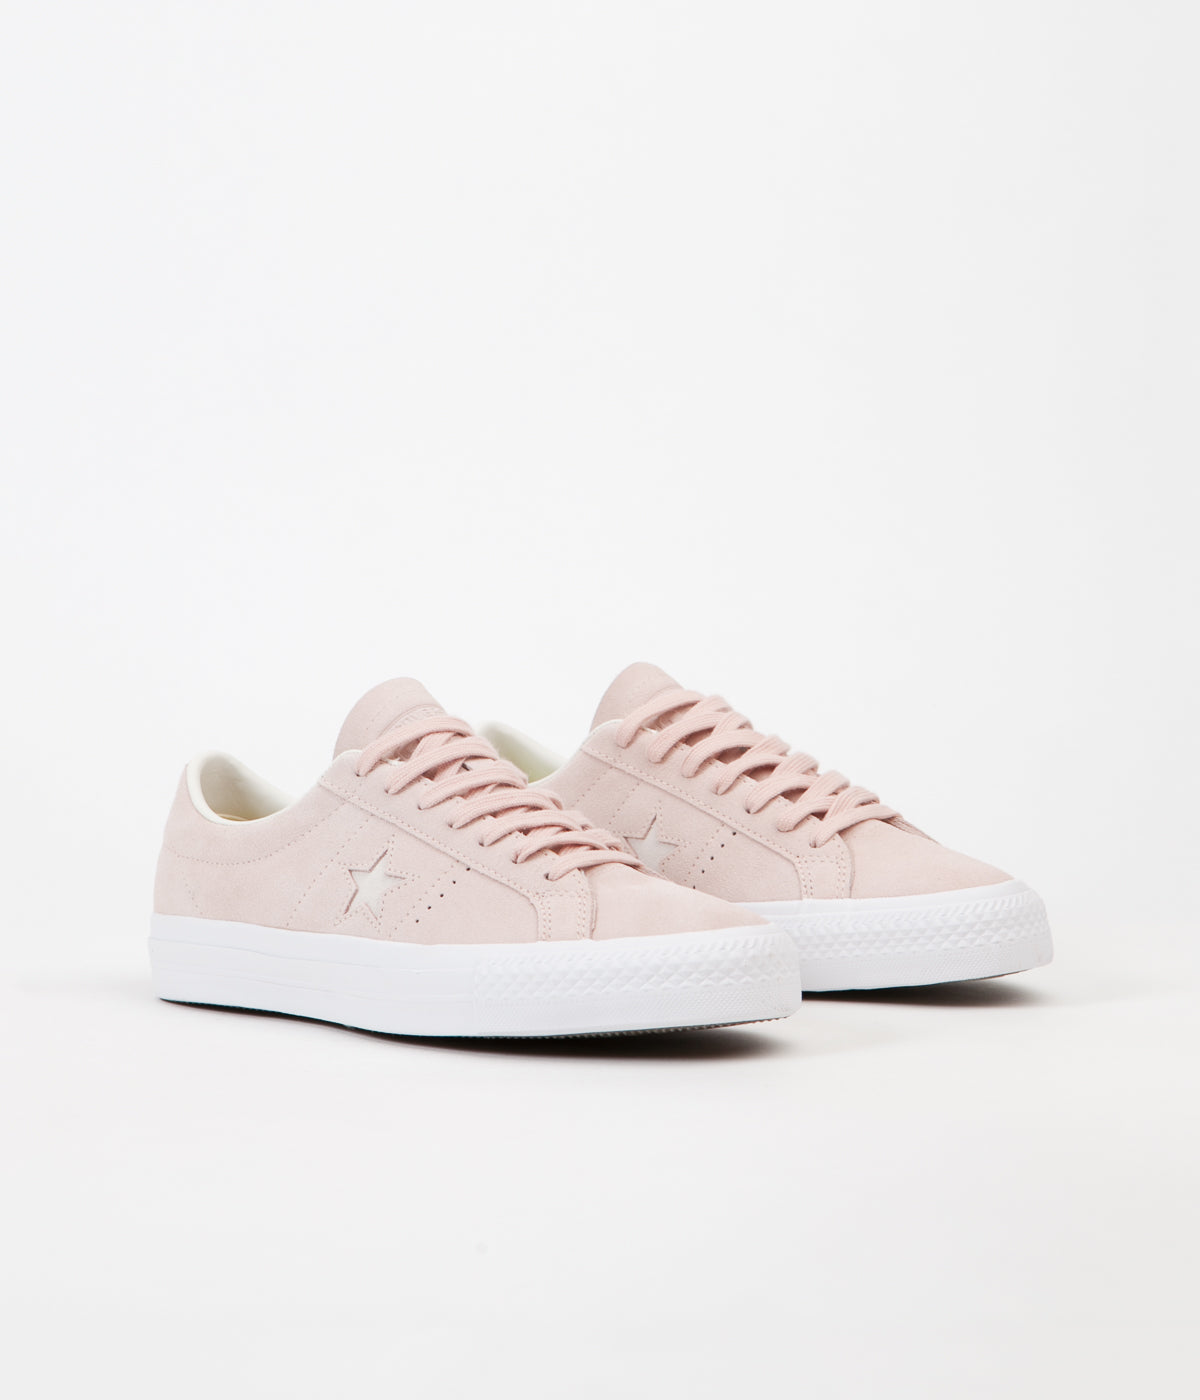 Converse One Star Pro Ox Shoes - Dusk Pink / Egret / White